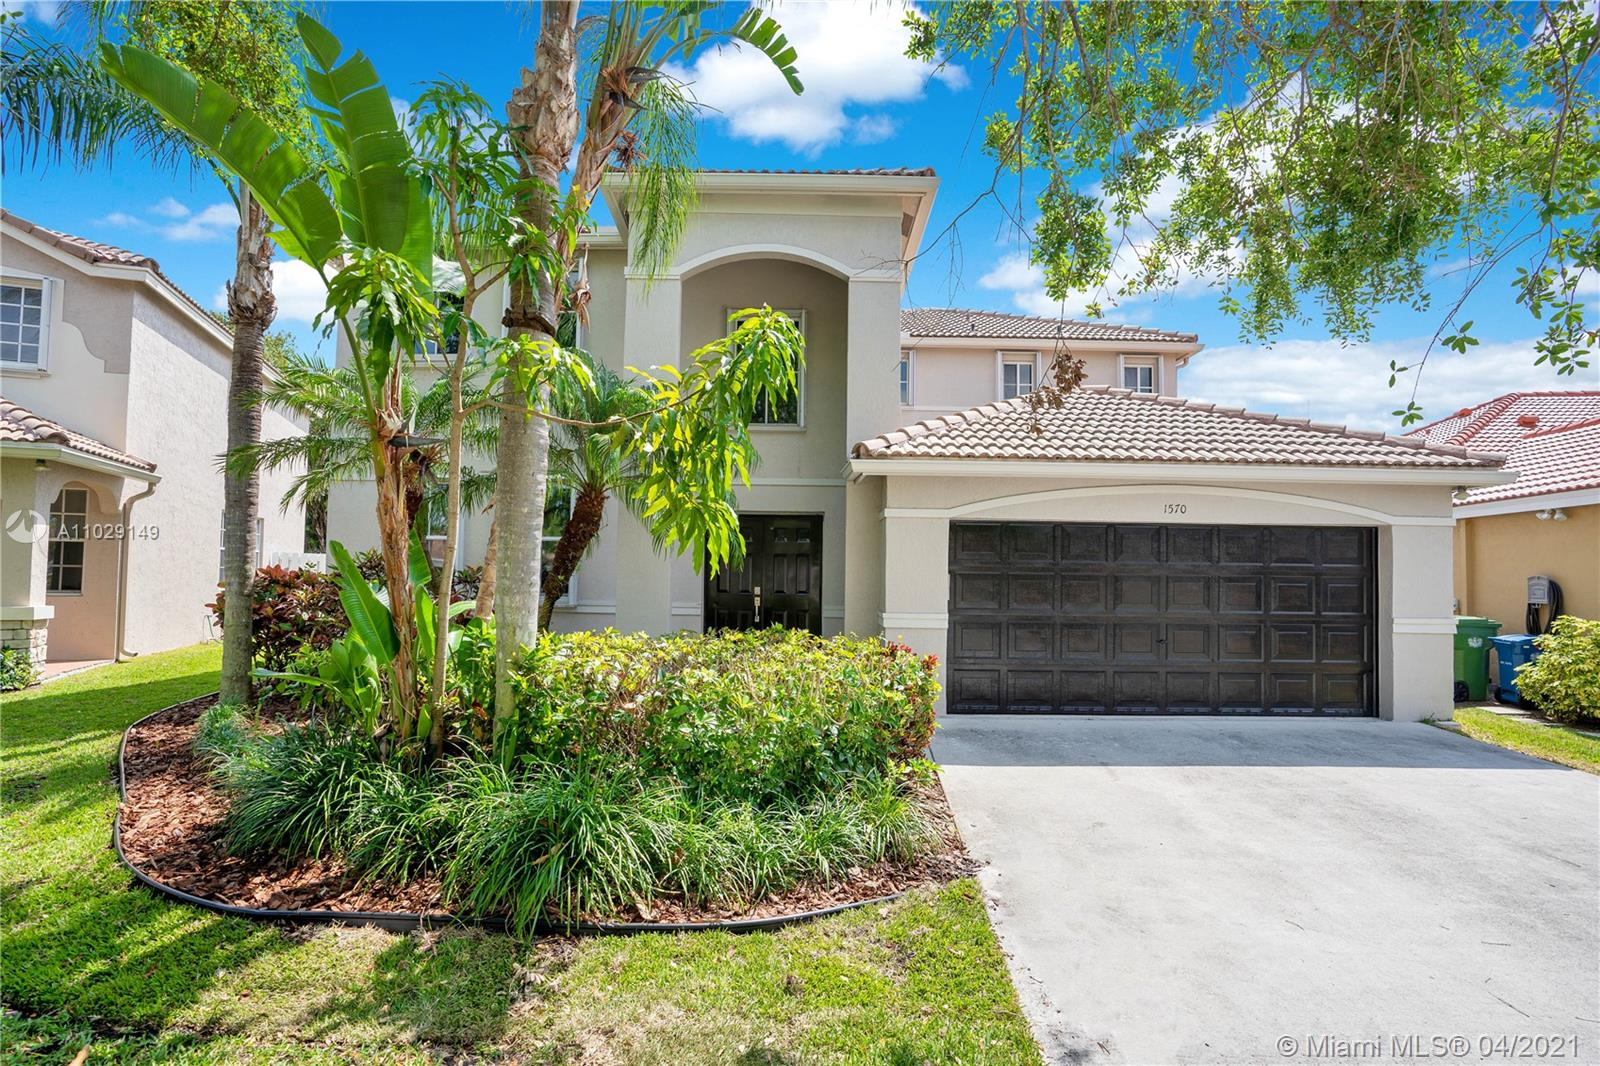 Weston - 1570 ELM GROVE RD, Weston, FL 33327